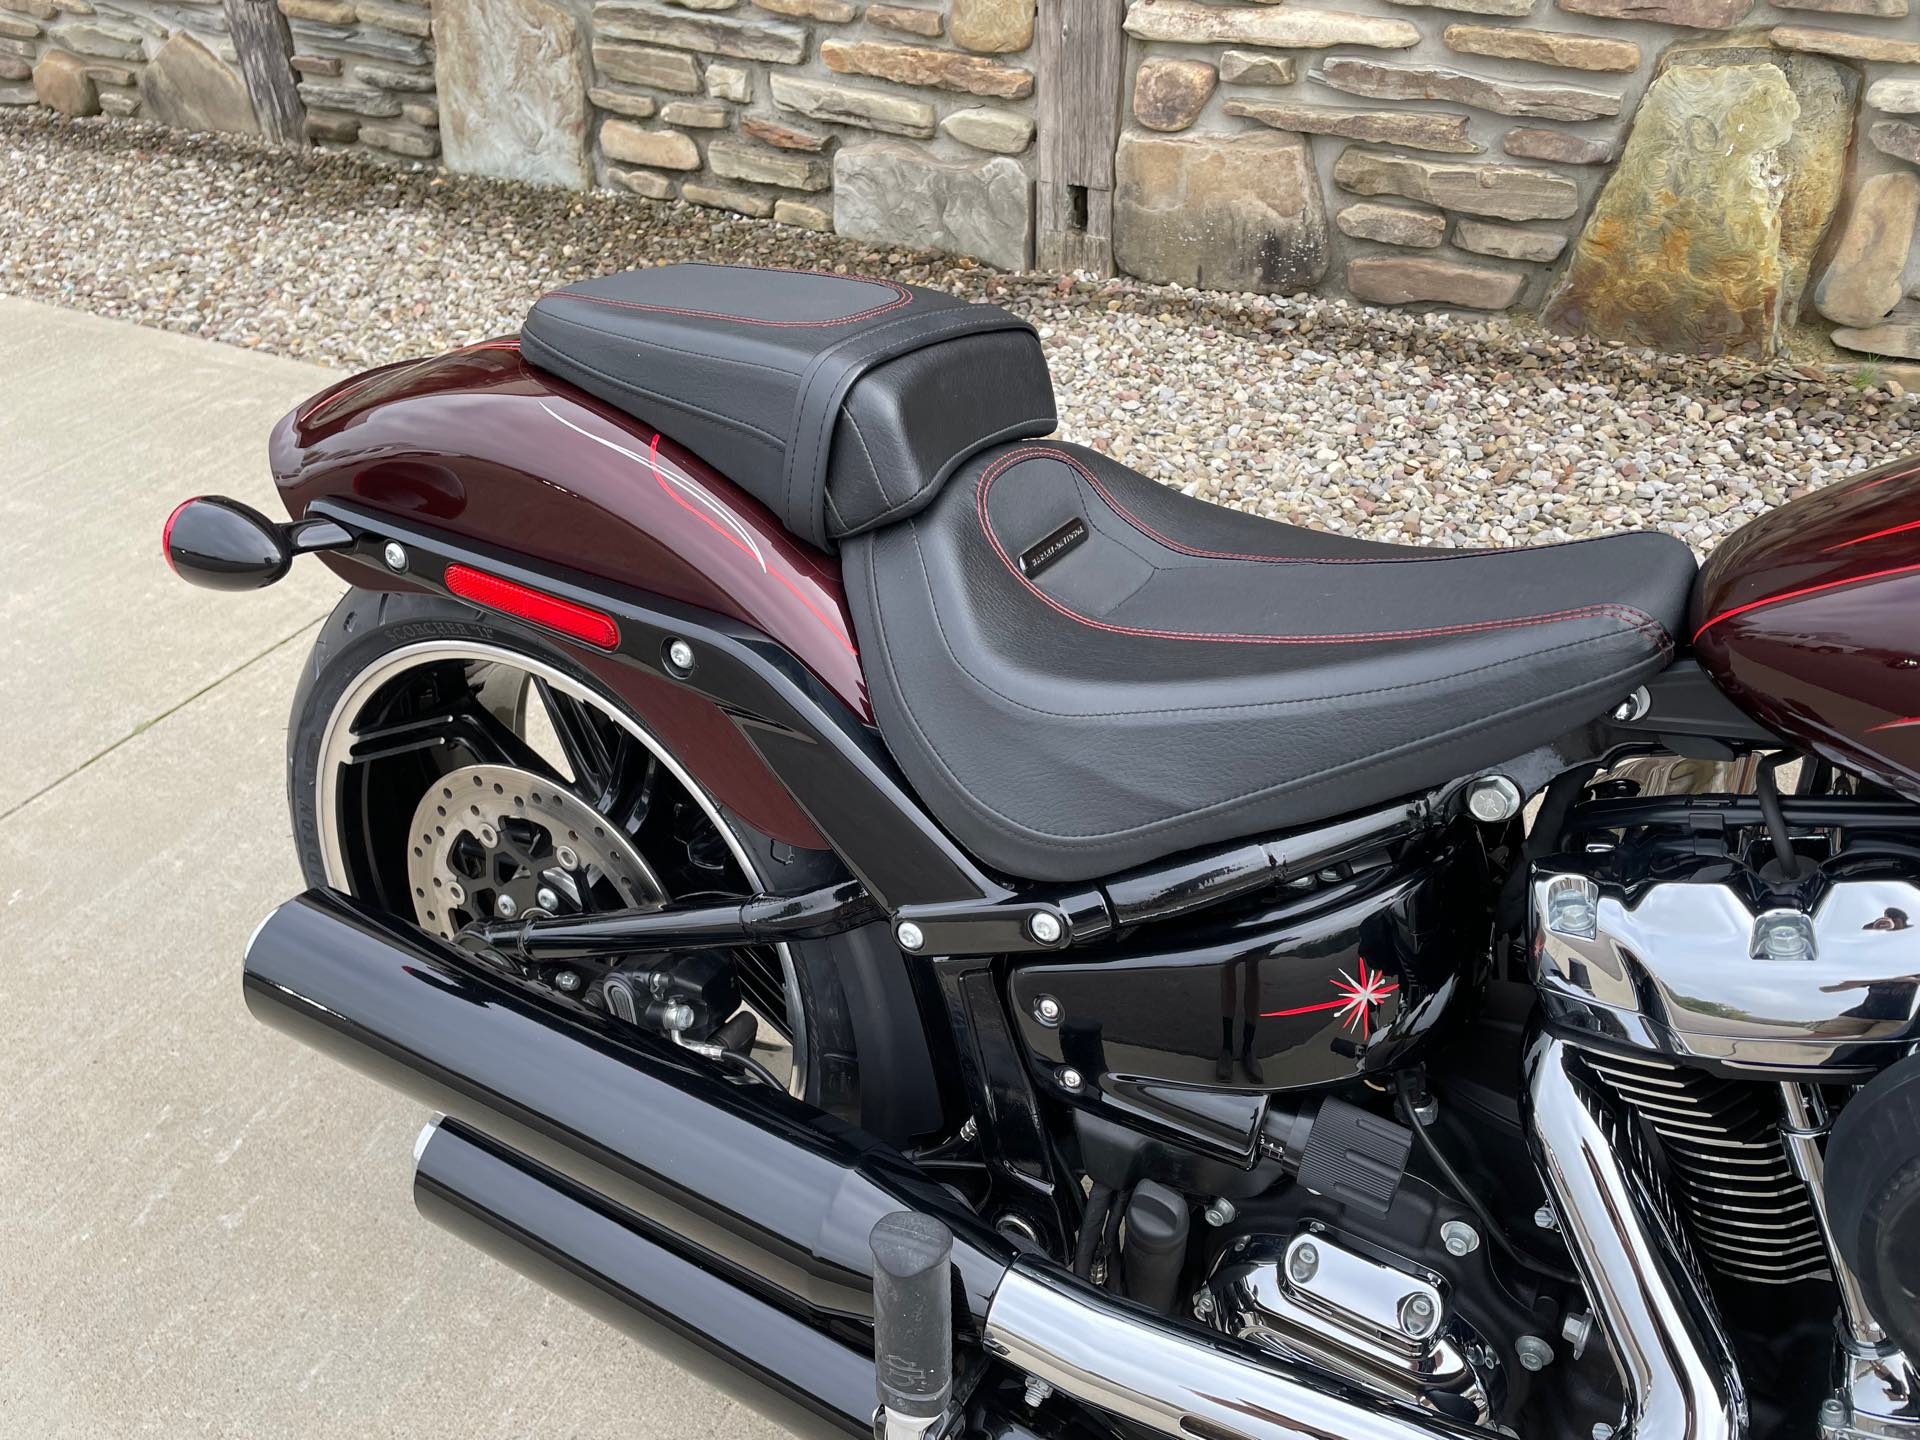 2018 Harley-Davidson Softail Breakout 114 at Arkport Cycles